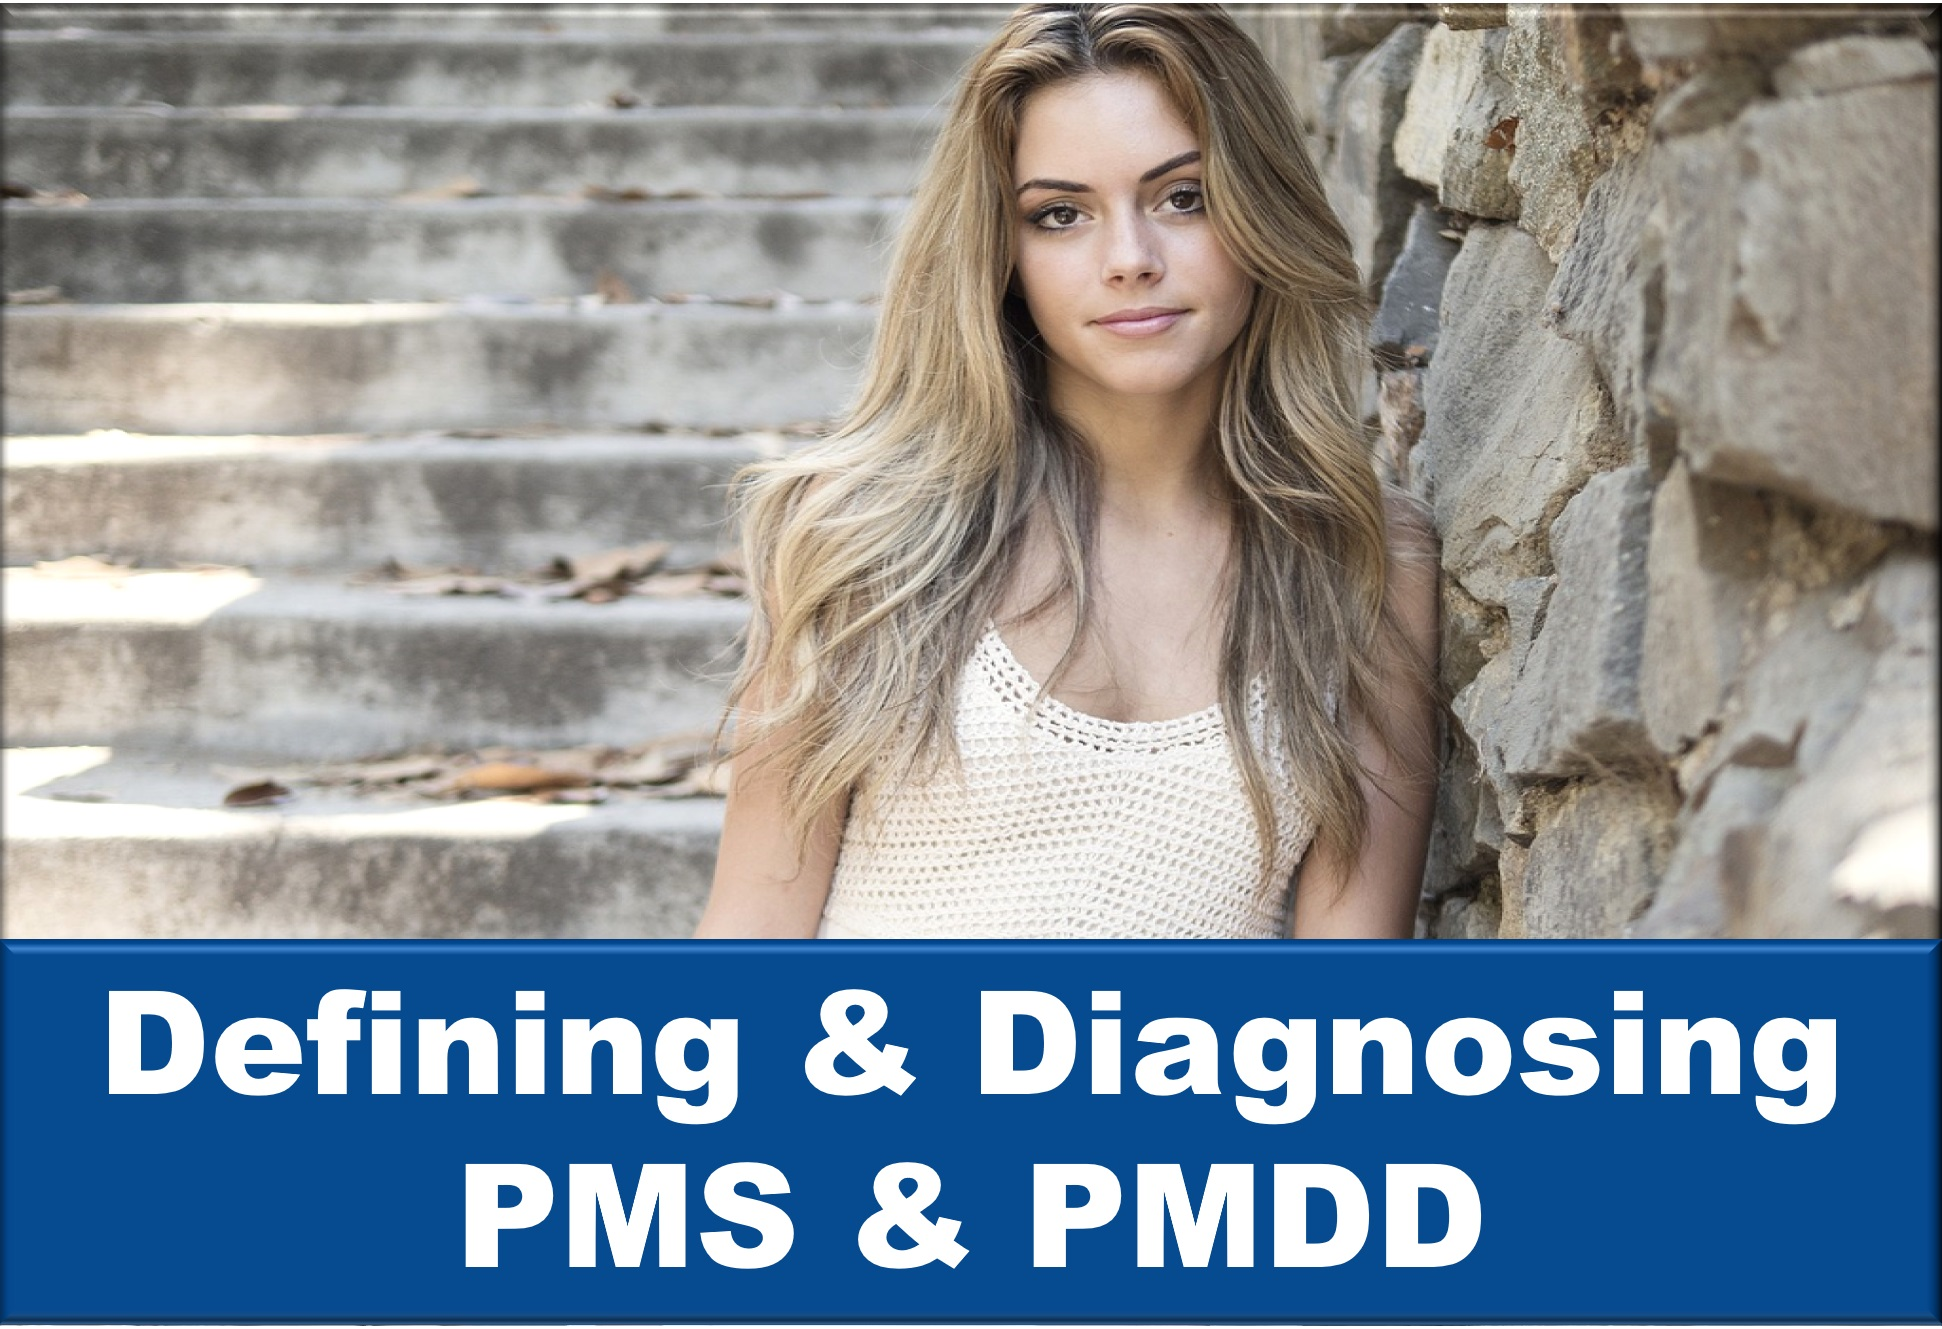 Defining & Diagnosing PMS & PMDD